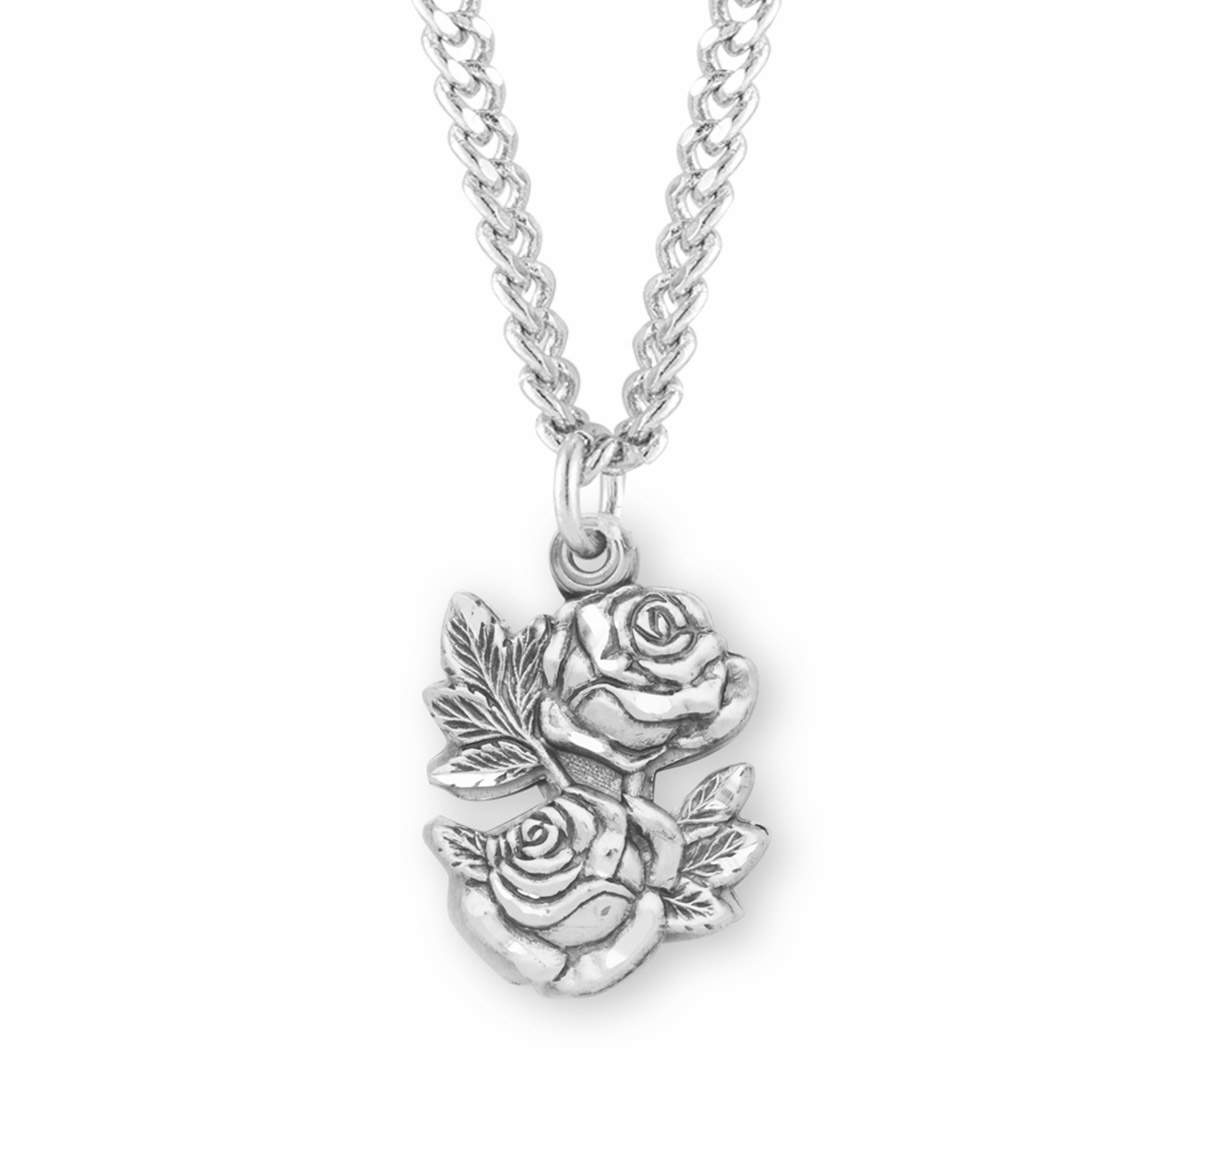 HMH Religious Double Rose Slide Miraculous Sterling Necklace